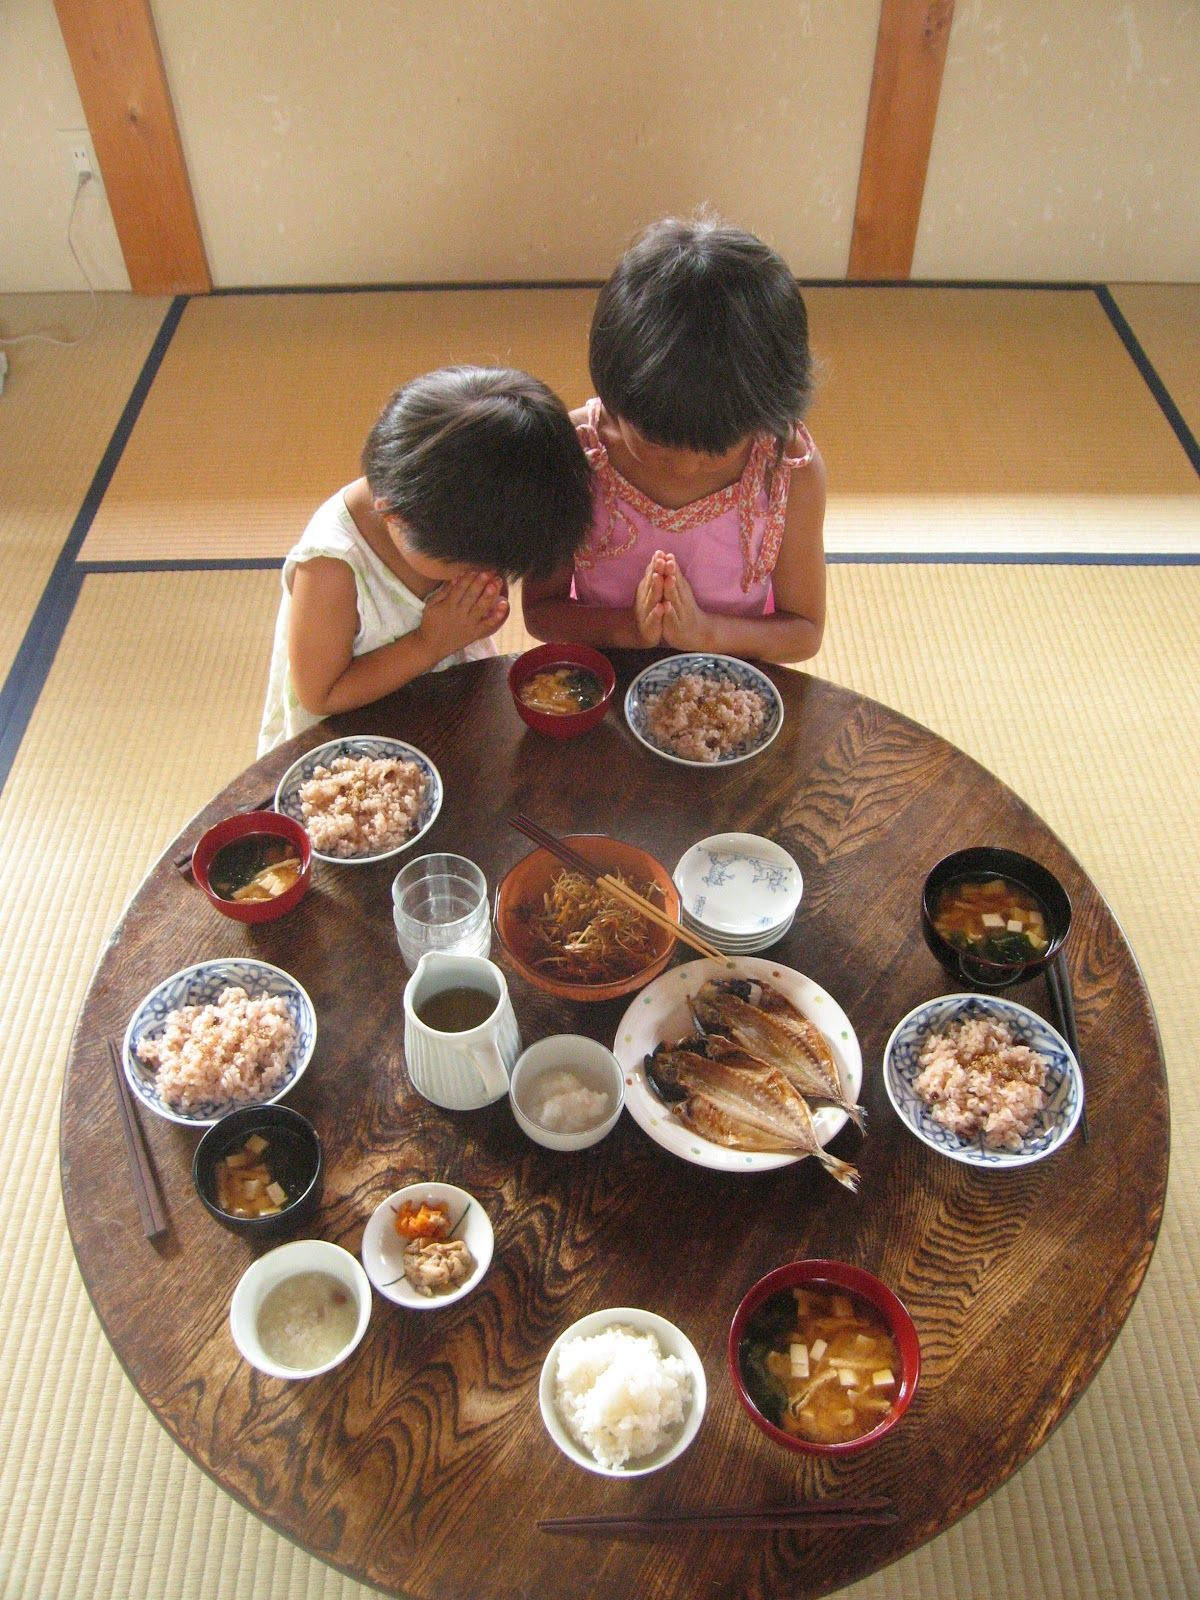 Traditional Japanese Meals On Chabudai Low Dining Table In A Tatami  Room|ちゃぶ台ご飯